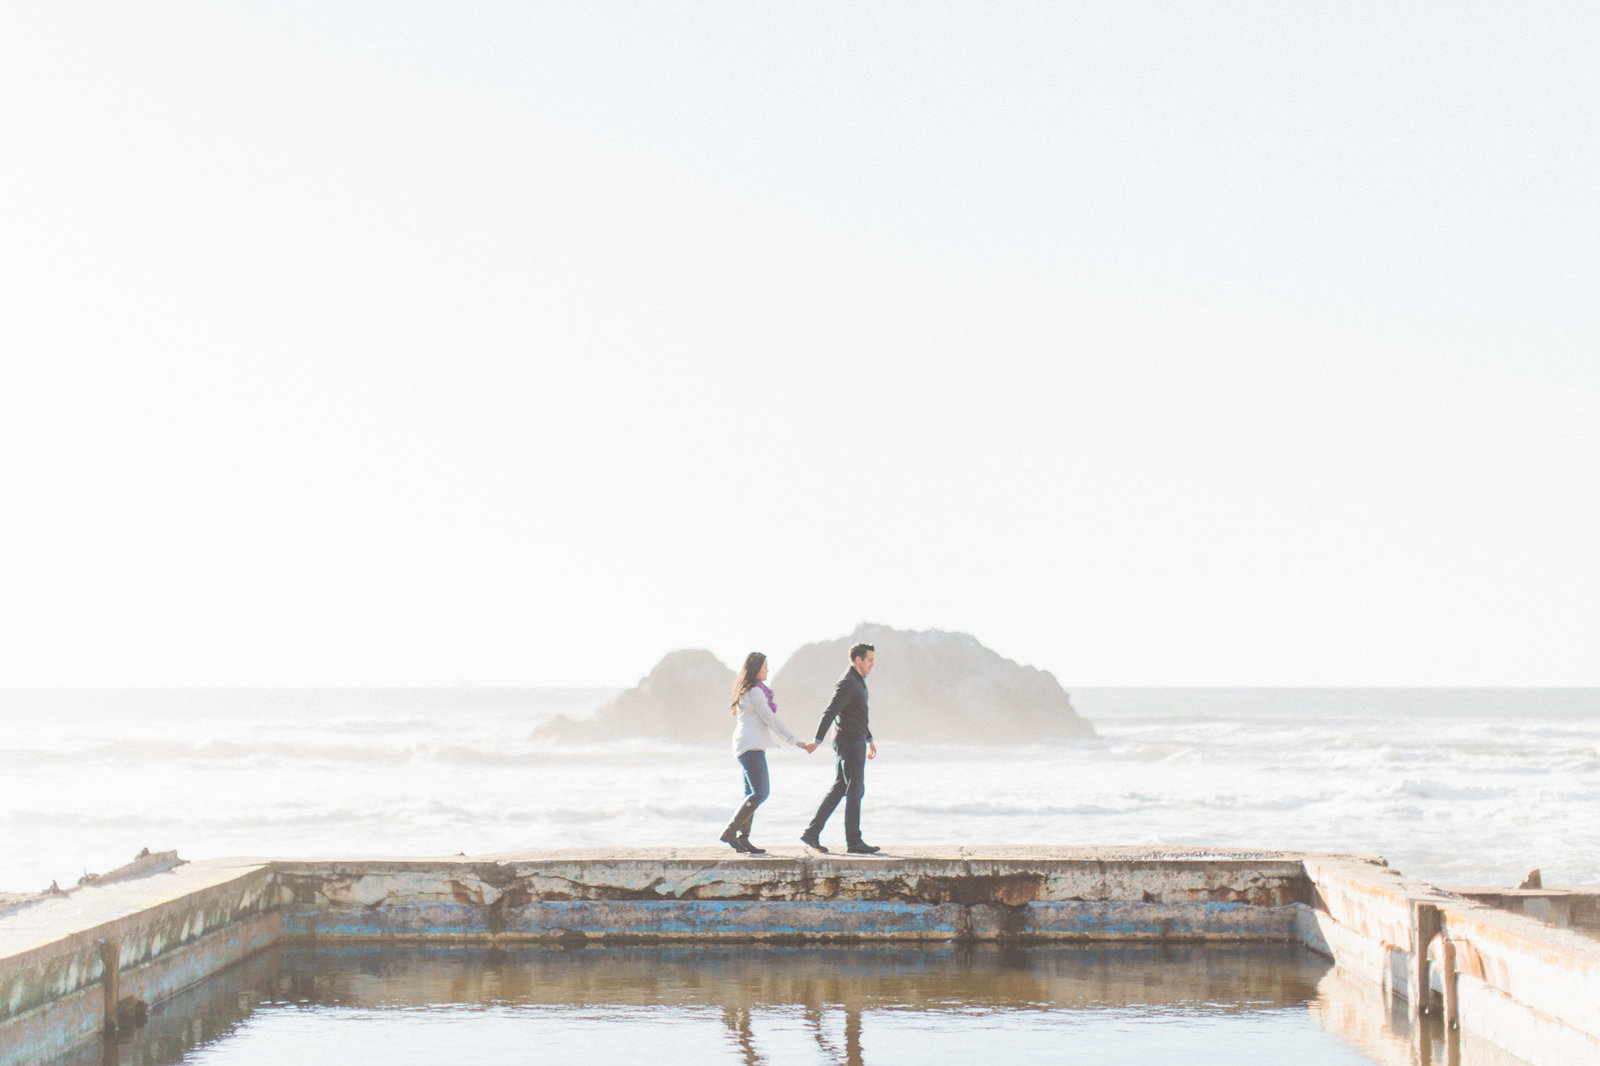 San-Francisco-Engagement-Photographer-5